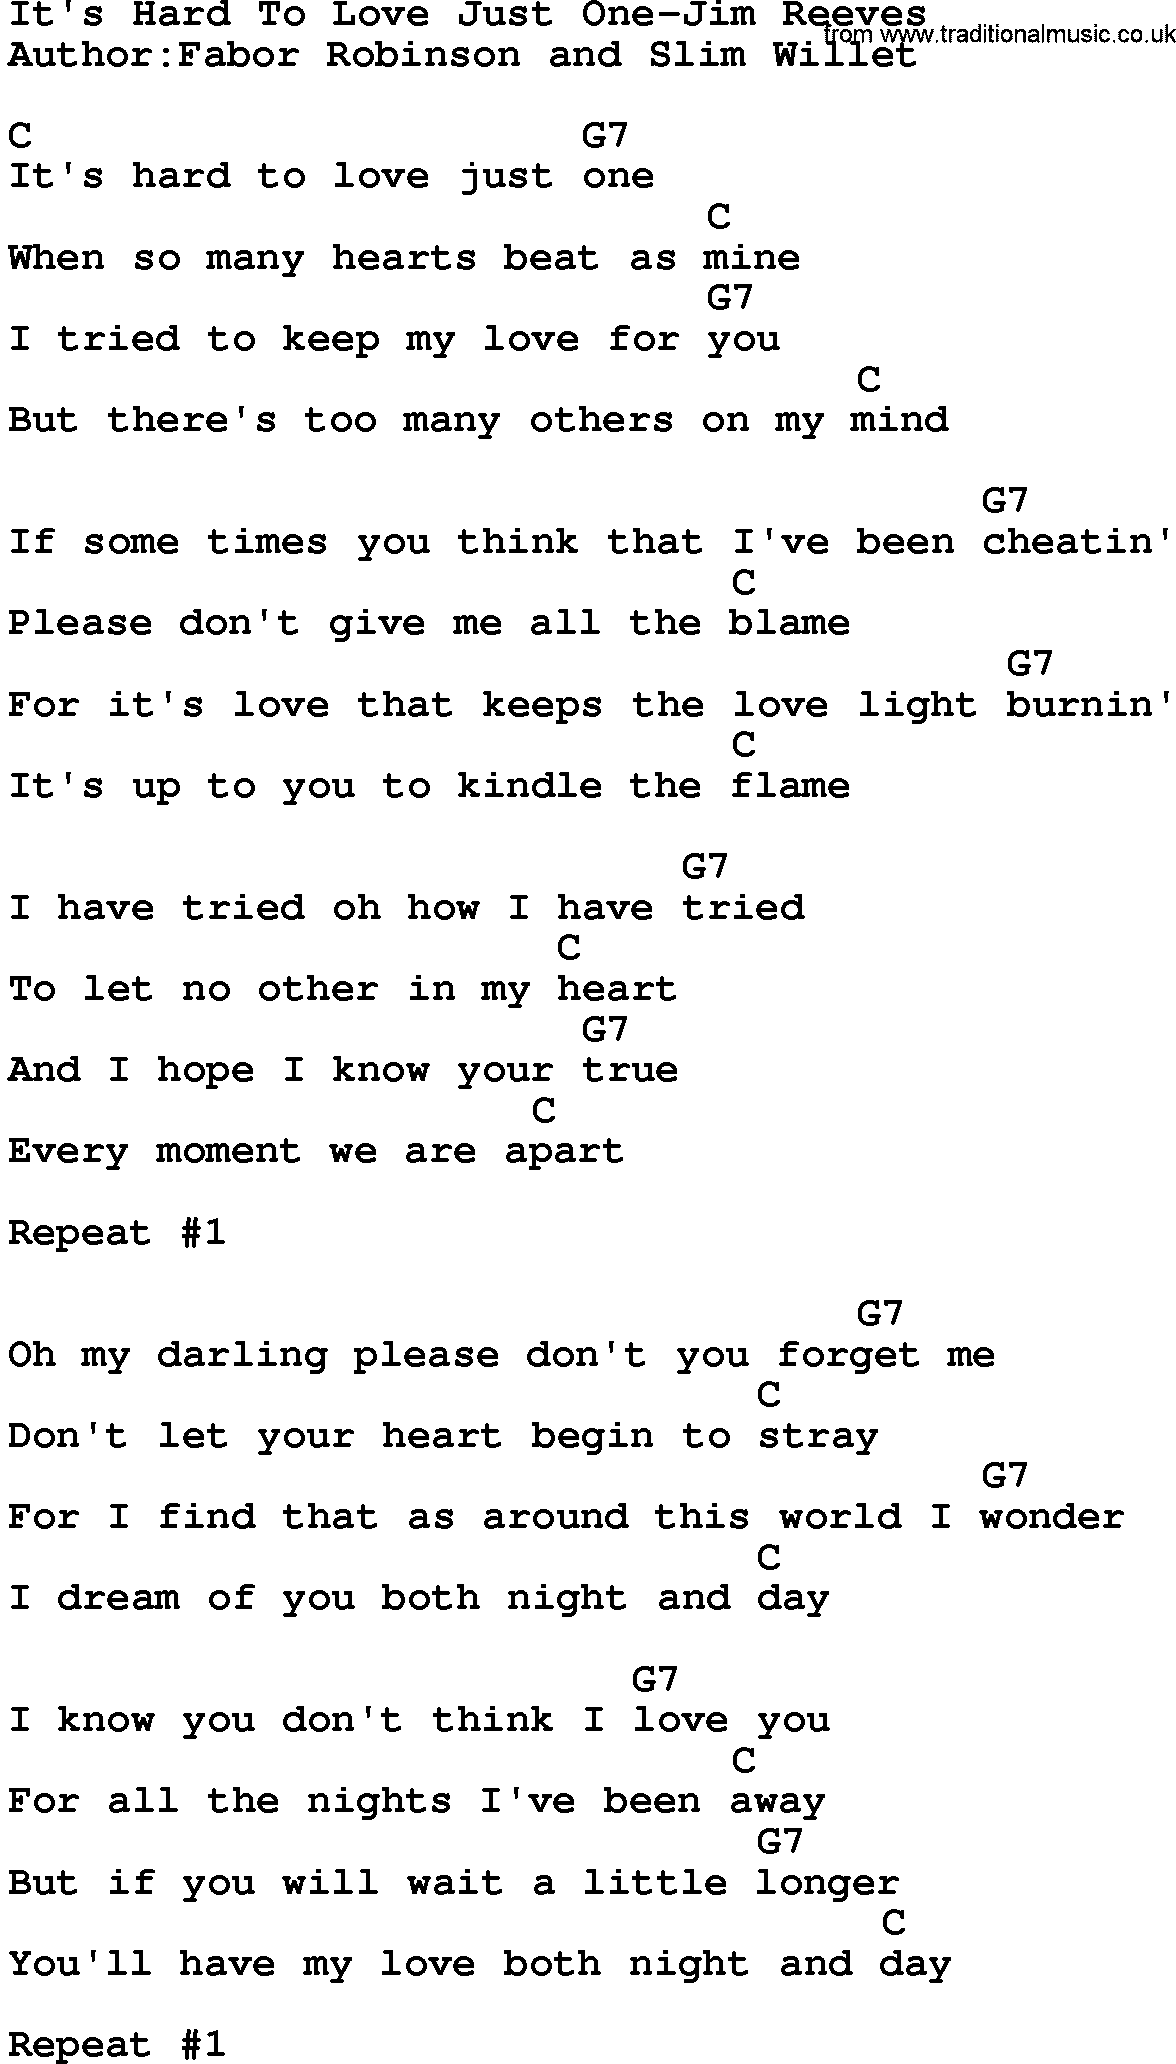 hard to find love lyrics I need someone to help these hard times pass find someone to help lyrics not available 4 common all the things that you wanted me to love i'd have to find.